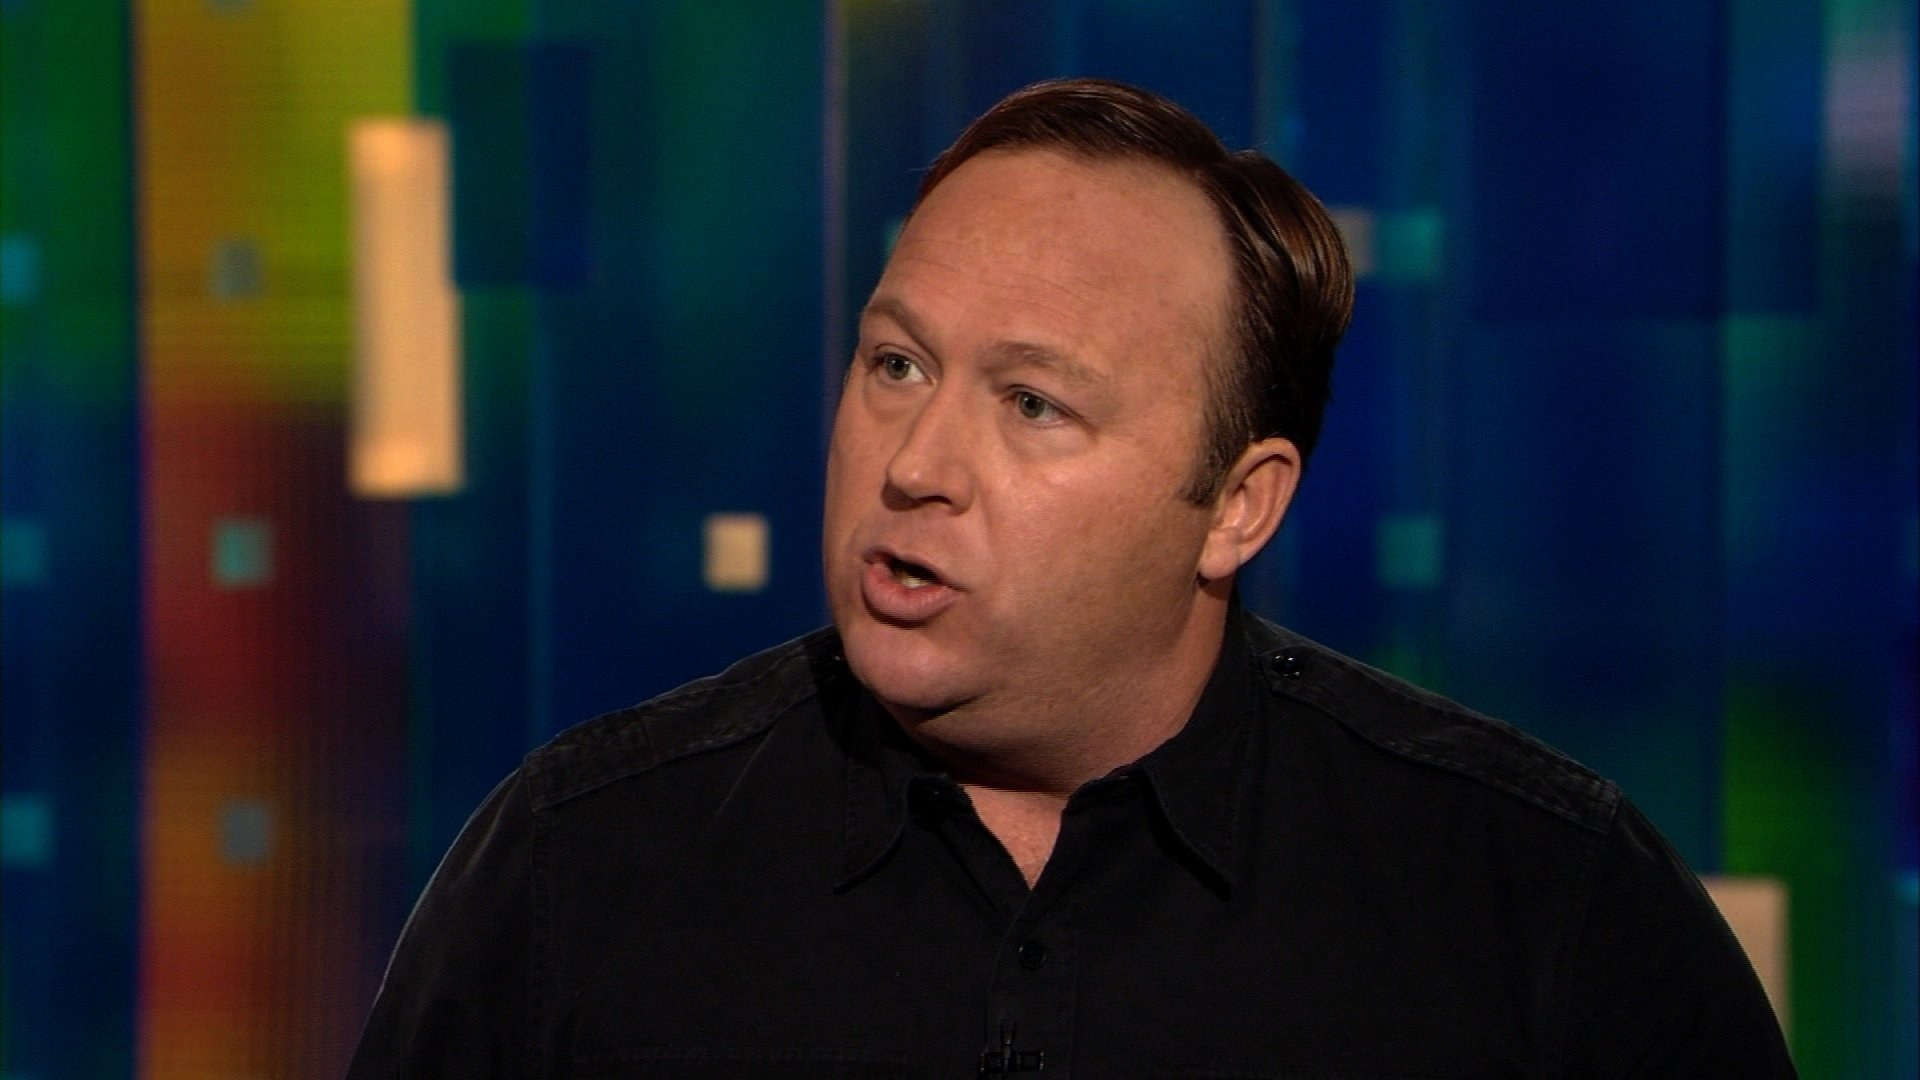 Alex Jones interview draws 3.5 million viewers